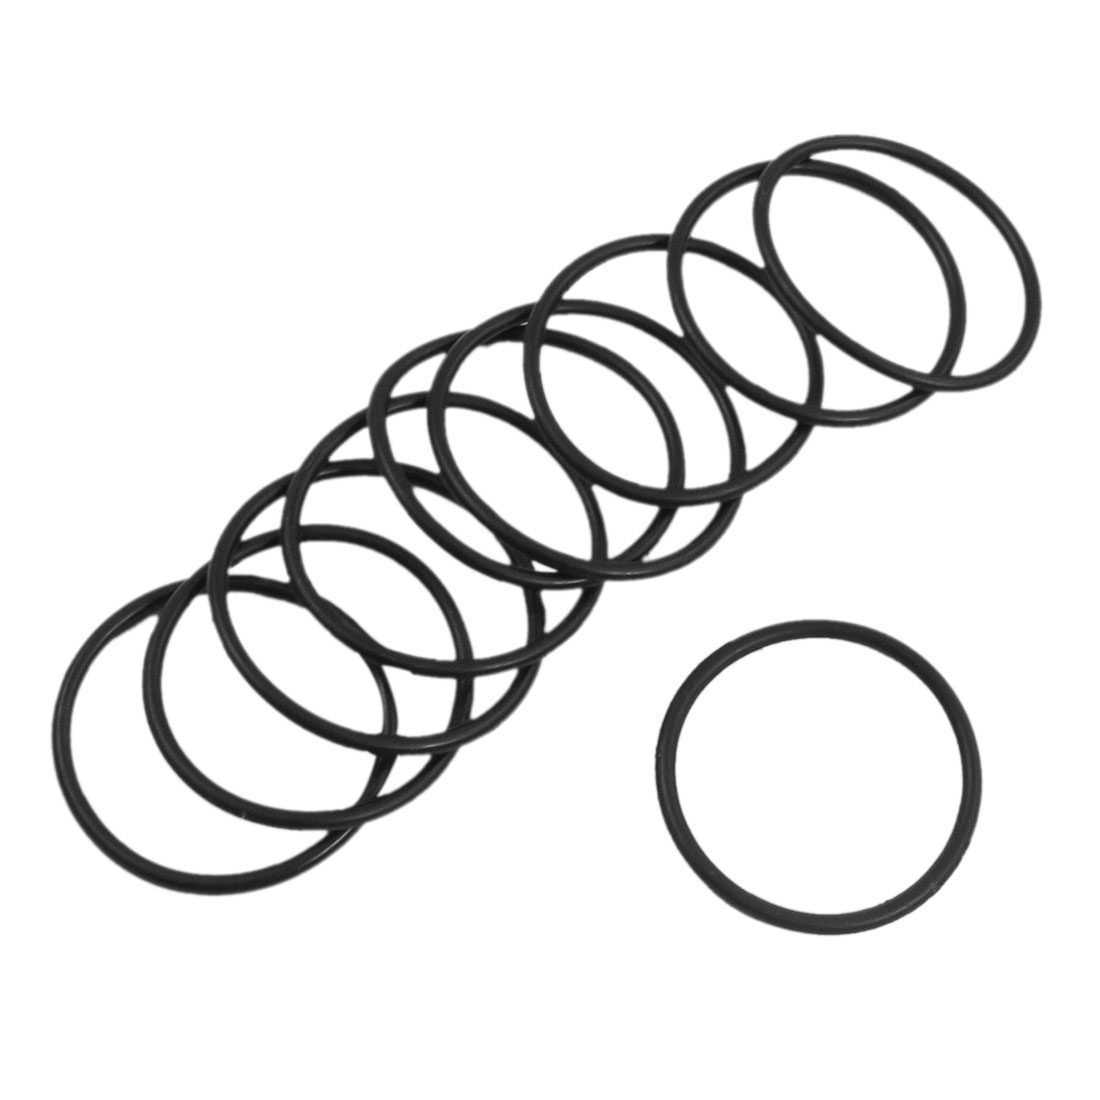 10 Pcs 32mm x 2mm Industrial Flexible Rubber O Ring Seal Washer